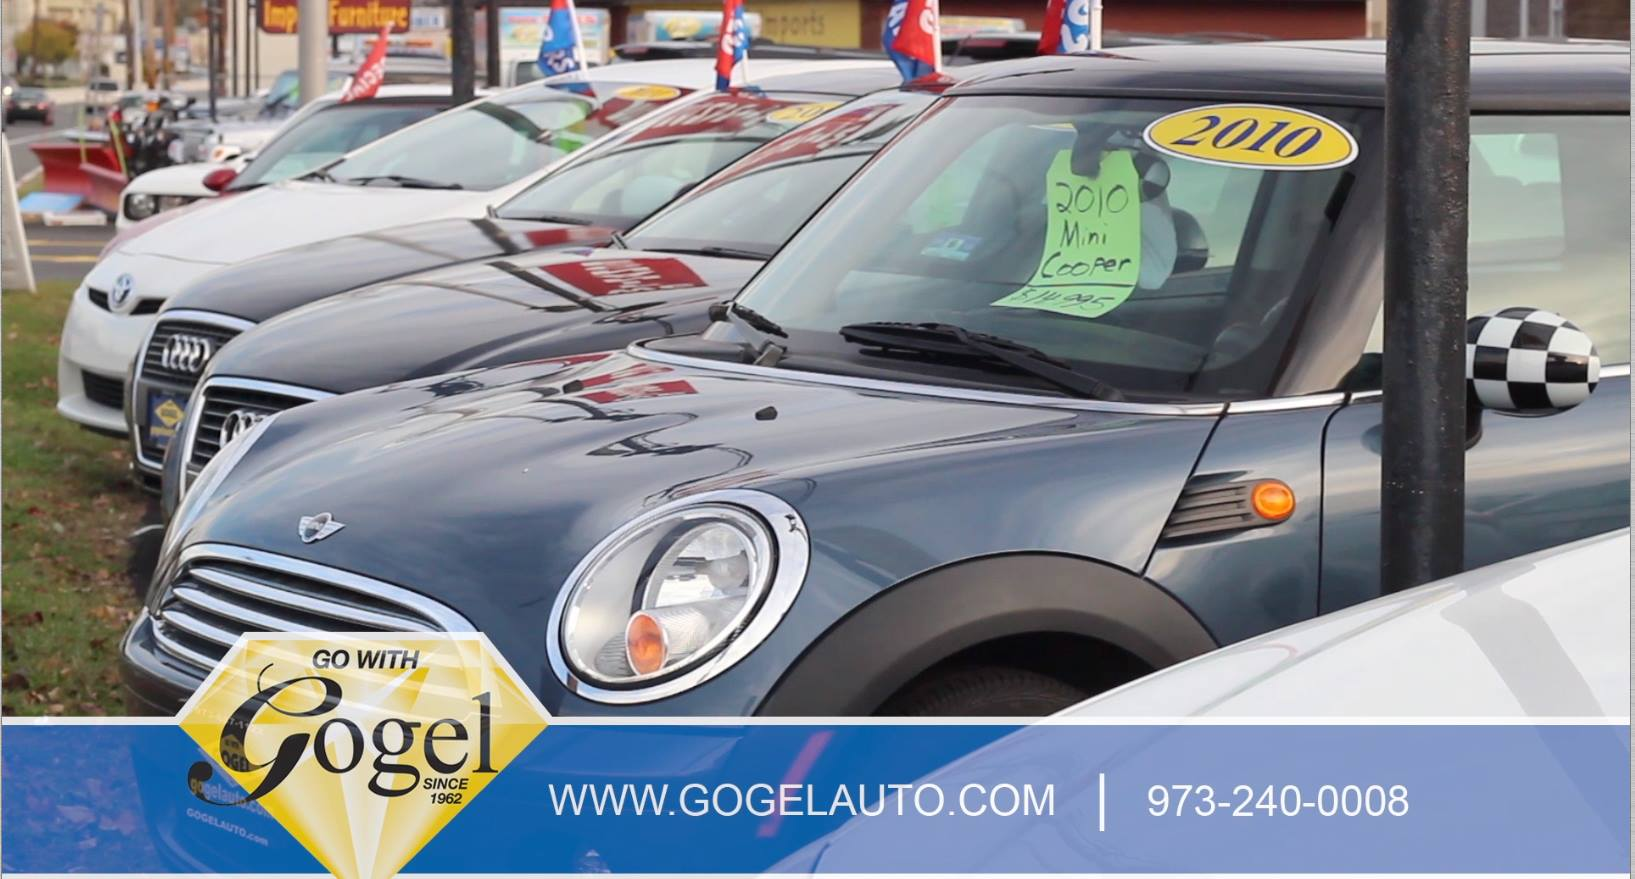 Used Car Dealer | Gogel Auto Sales | East Hanover, New Jersey